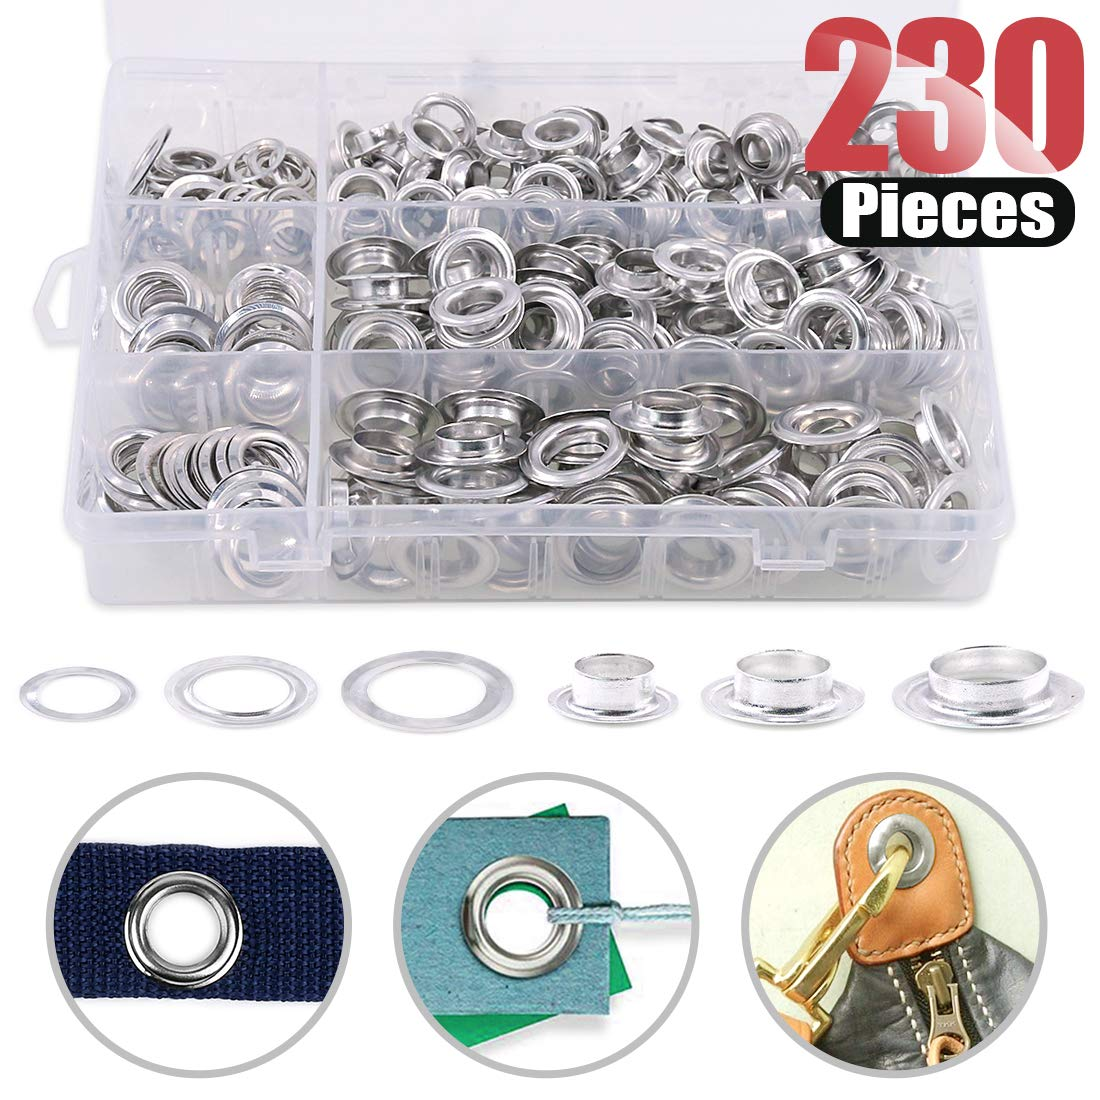 """Hilitchi 230 Sets 2/5"""" 1/2"""" 14/25"""" Aluminum Heavy Duty Grommets Eyelets with Washers for Curtain Leather Canvas Belts and DIY with Storage Box"""